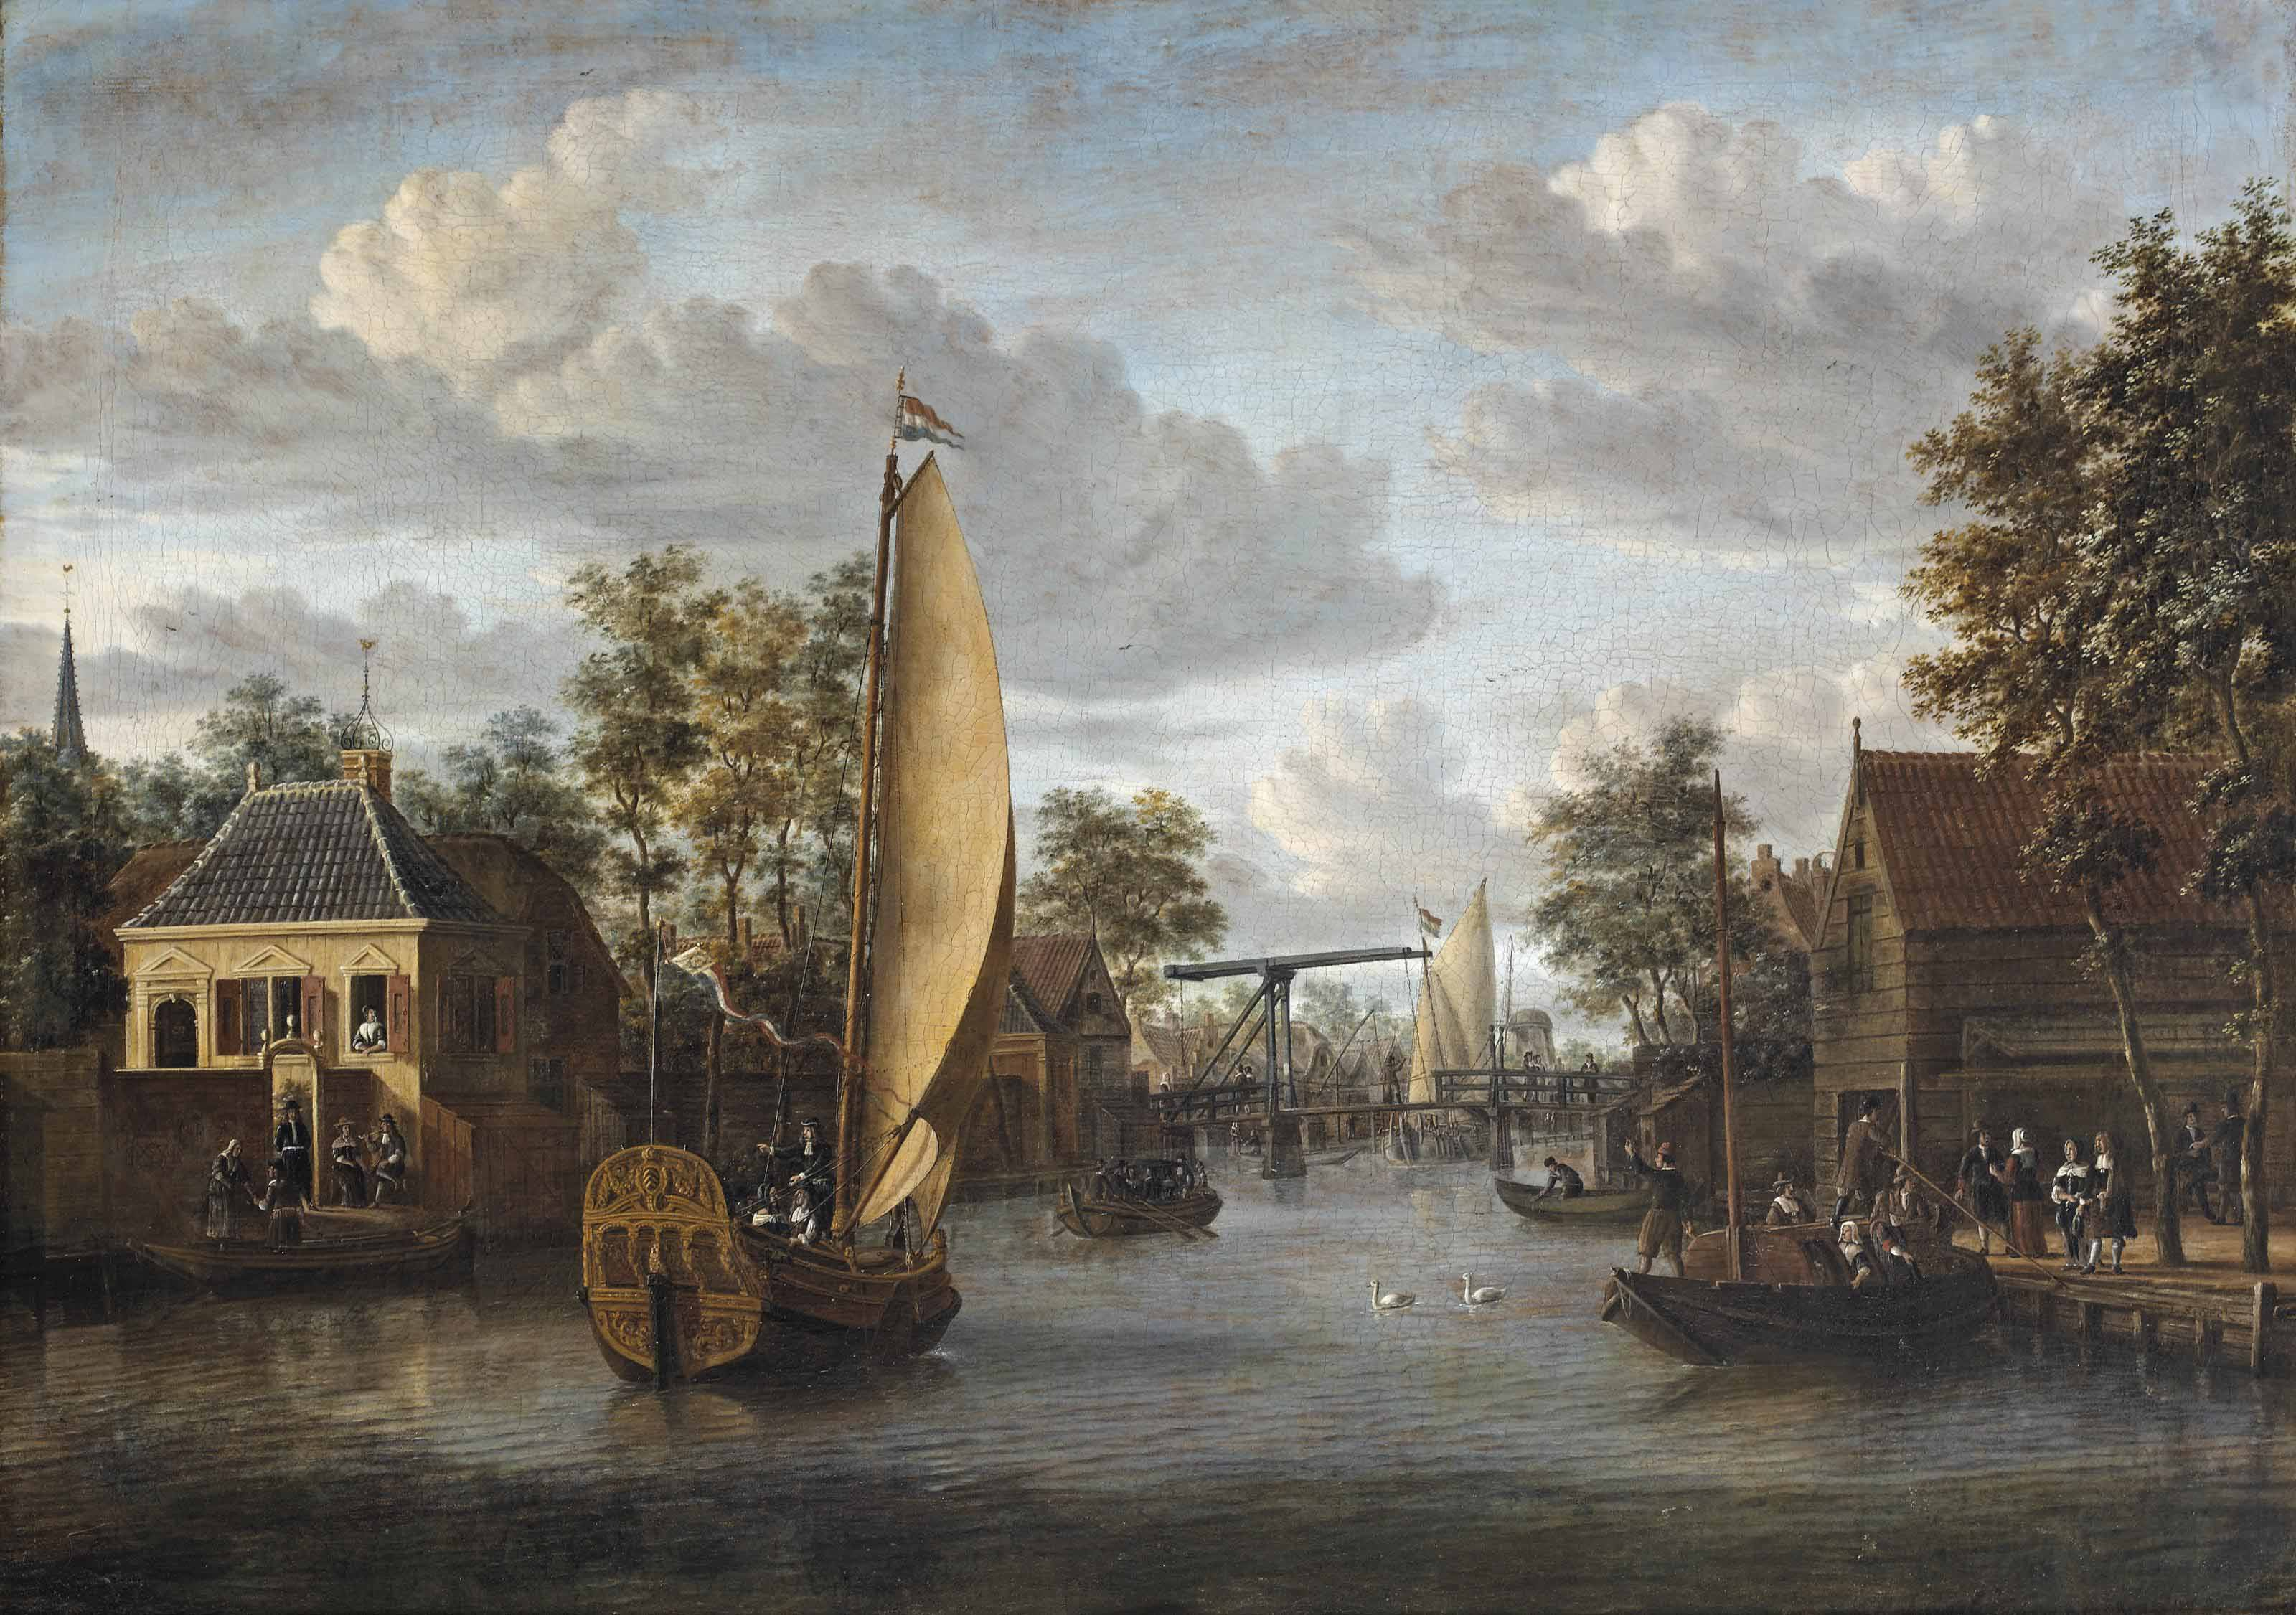 A view of the river Oude Rijn in Alphen aan den Rijn, with an elegant company in a yacht and other figures strolling along the river and on boats